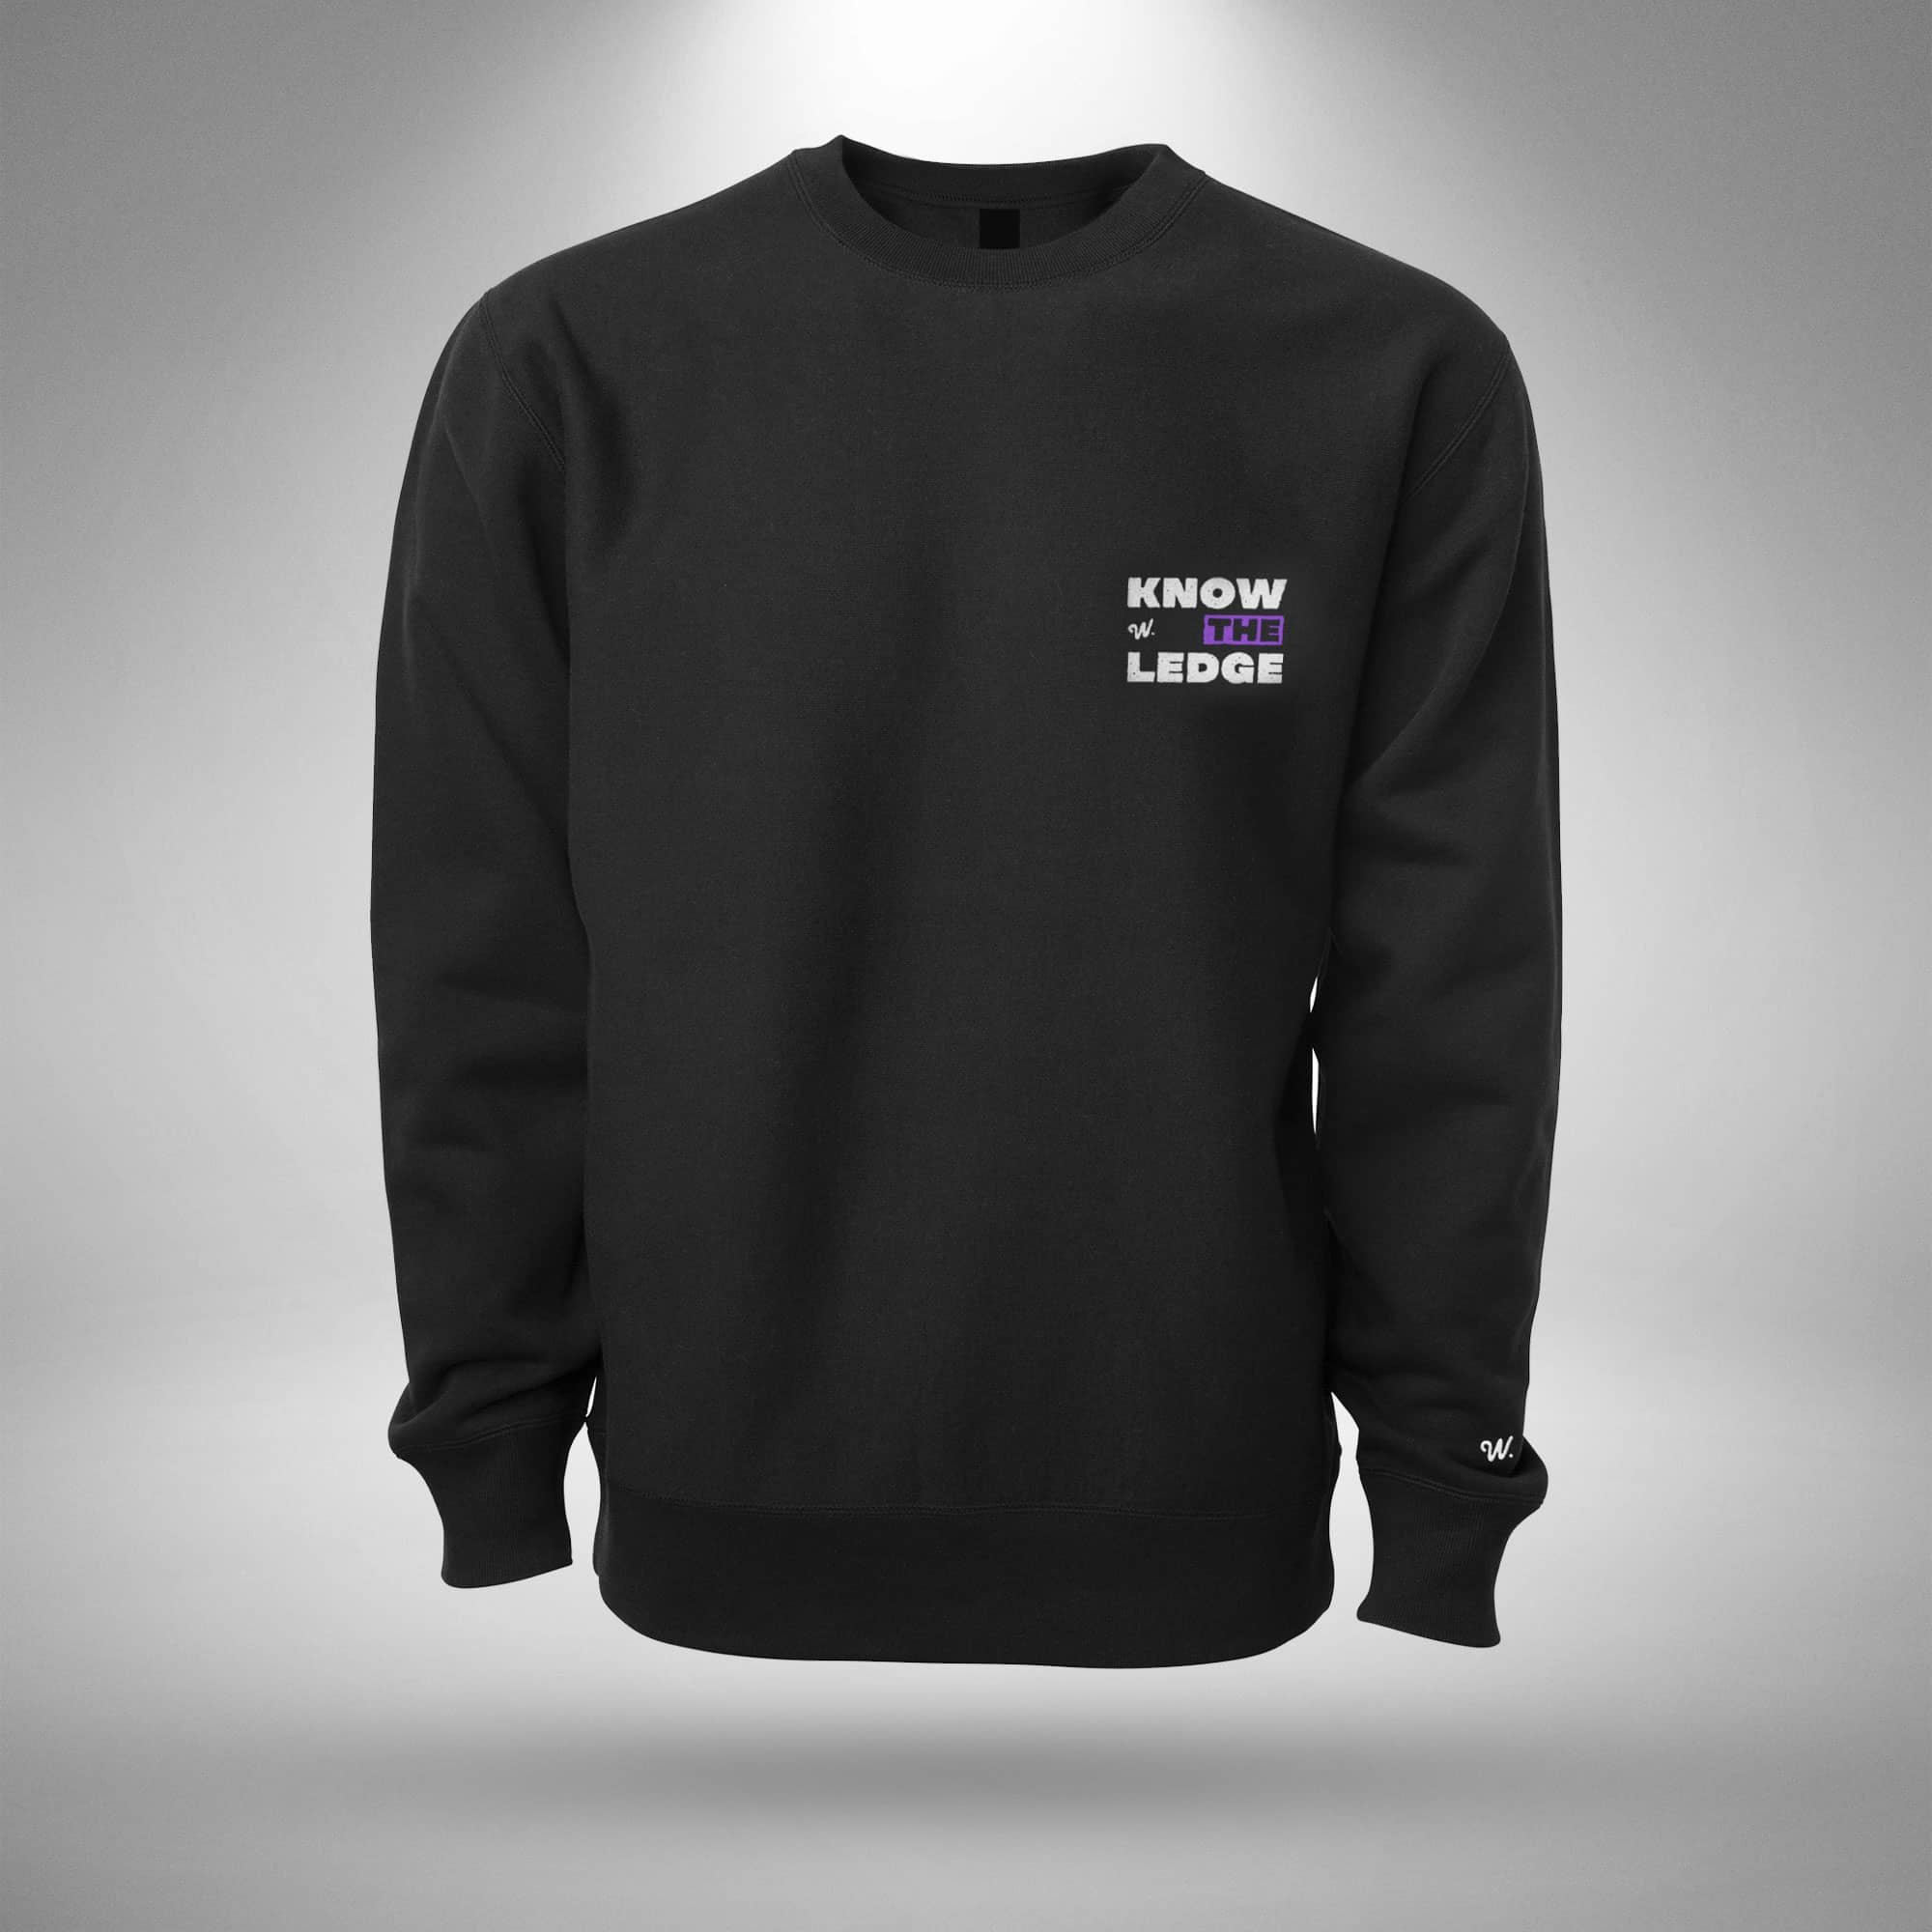 Knowledge Crew Neck Sweatshirt